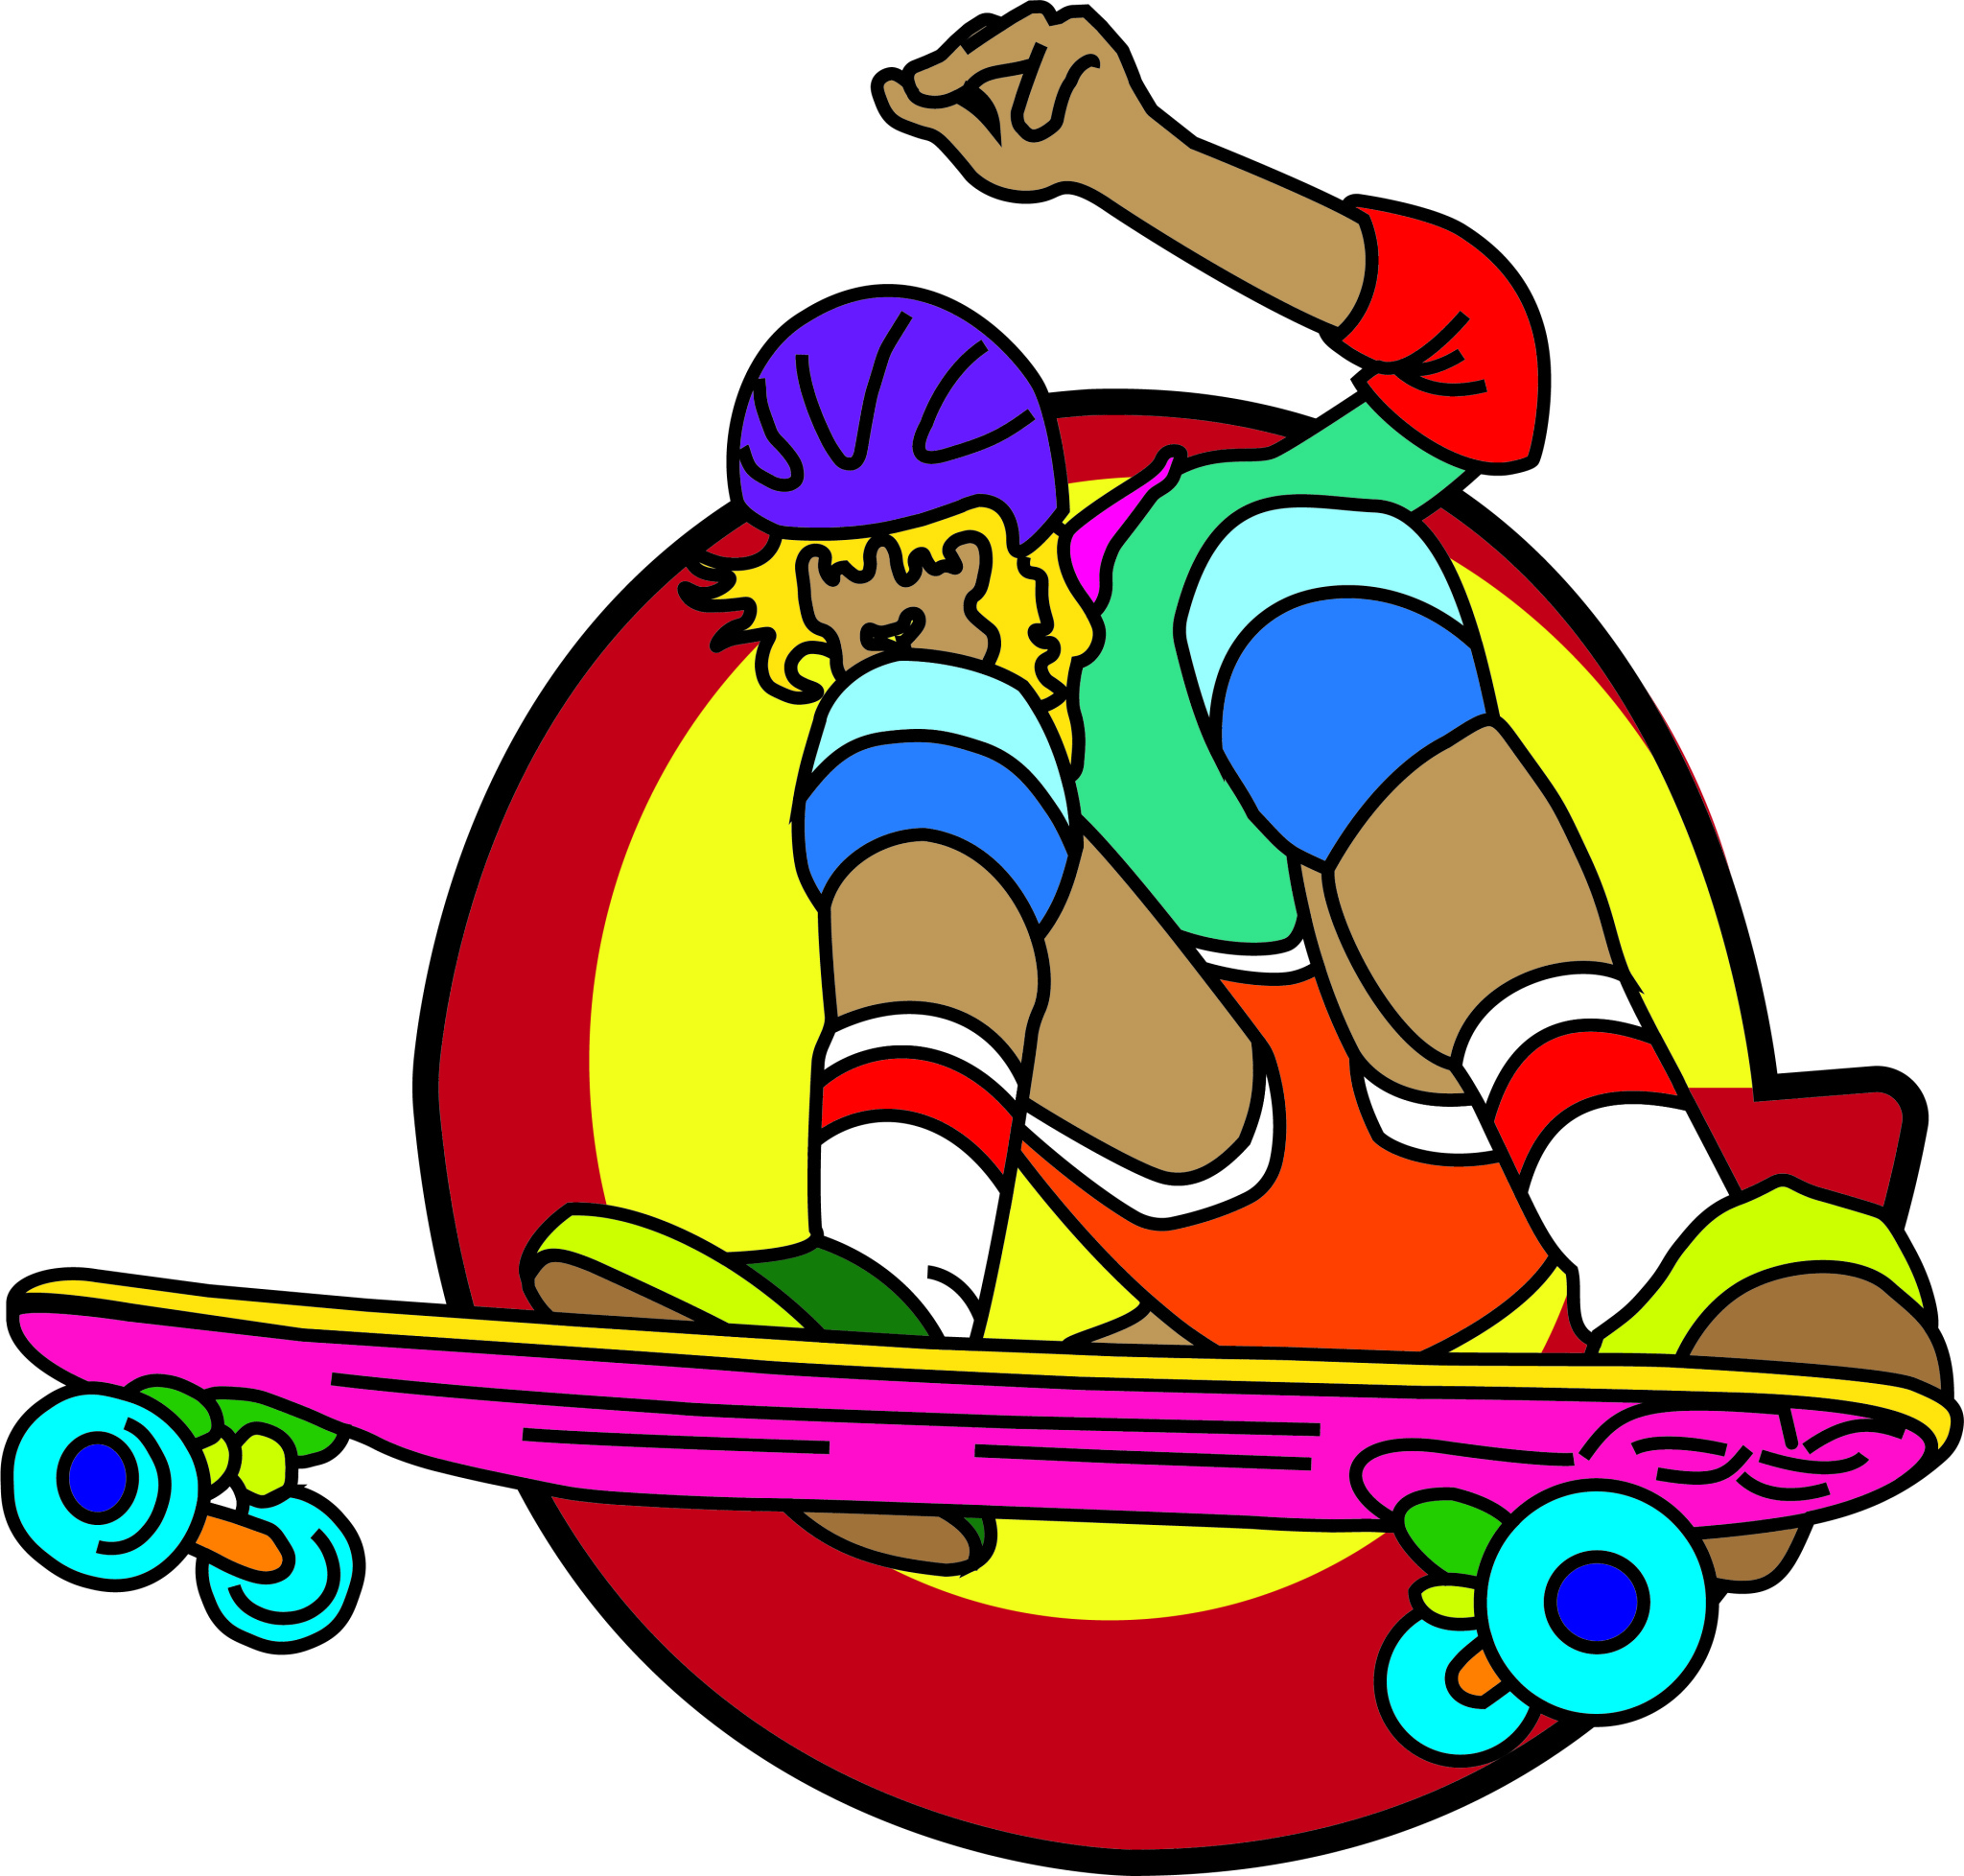 Colourful skateboarding graphic